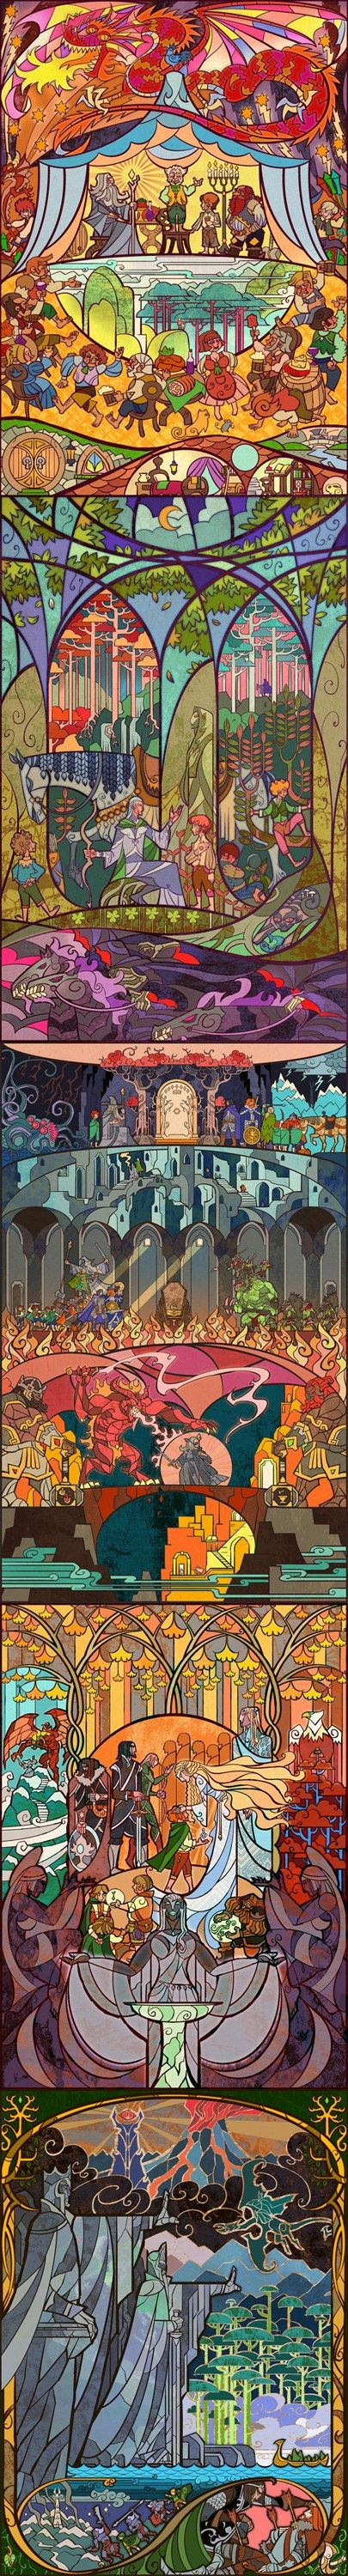 Stained glass Lord of the Rings: